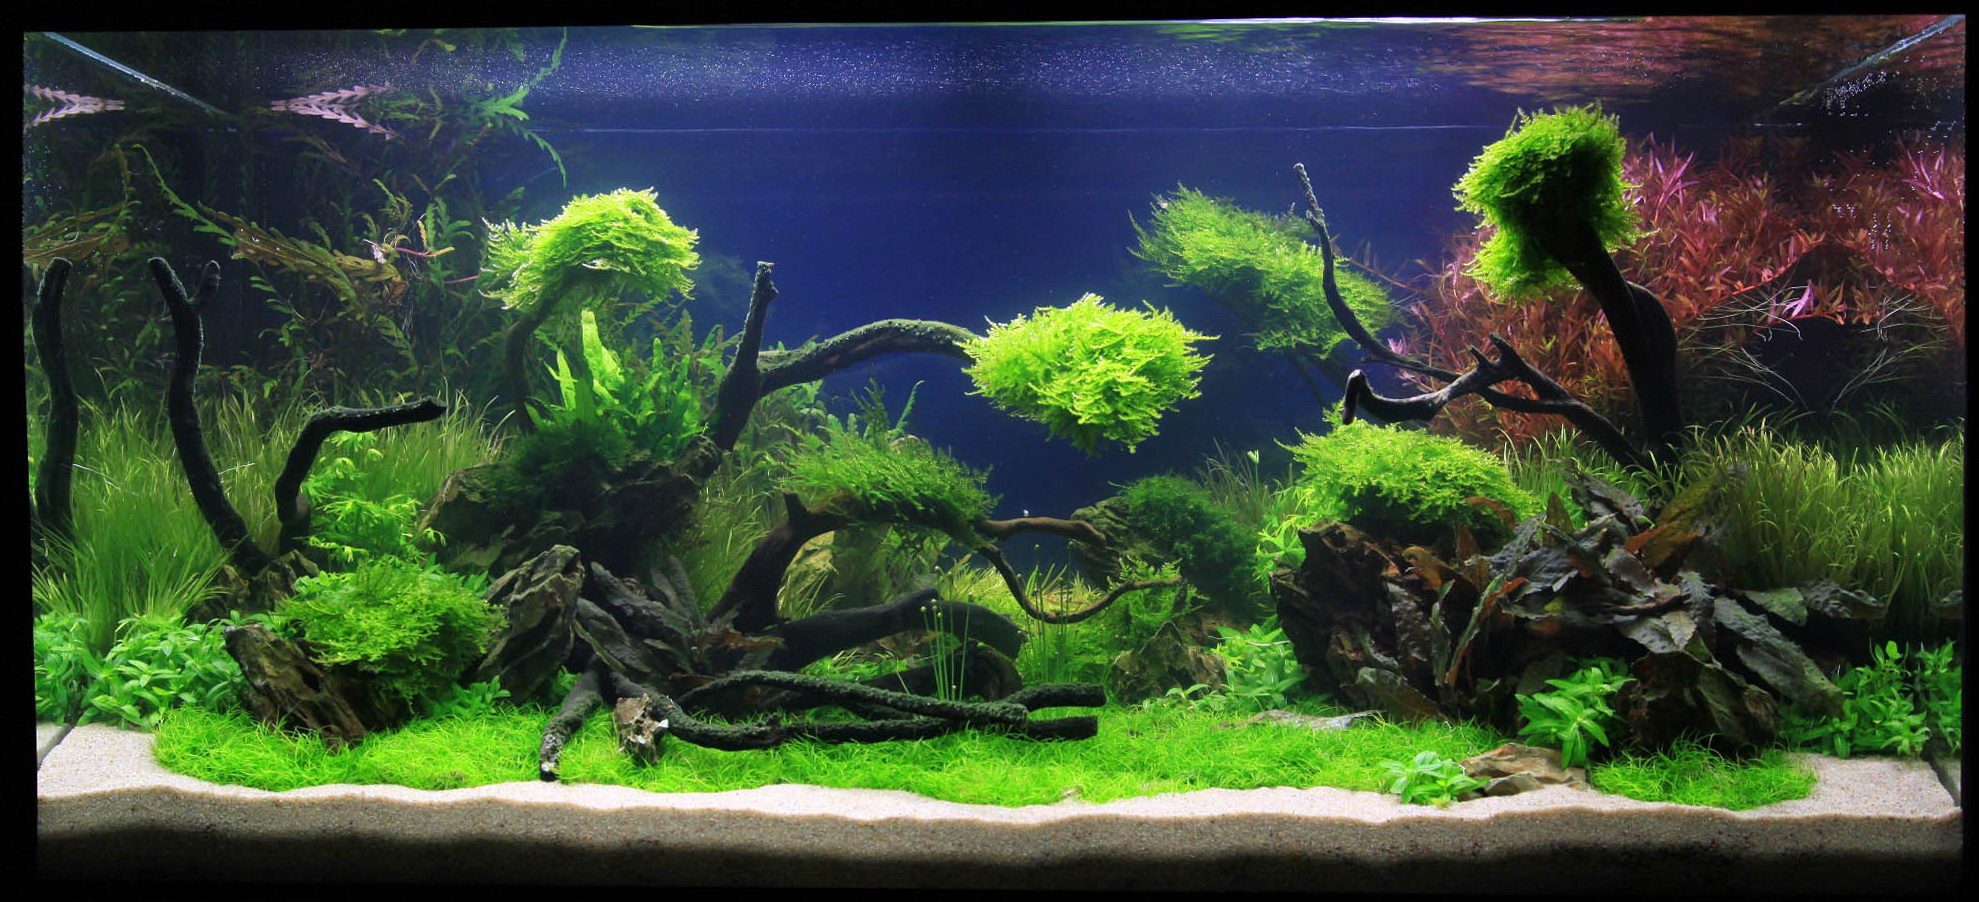 Adrie baumann and aquascaping aqua rebell for Aquarium stone decoration